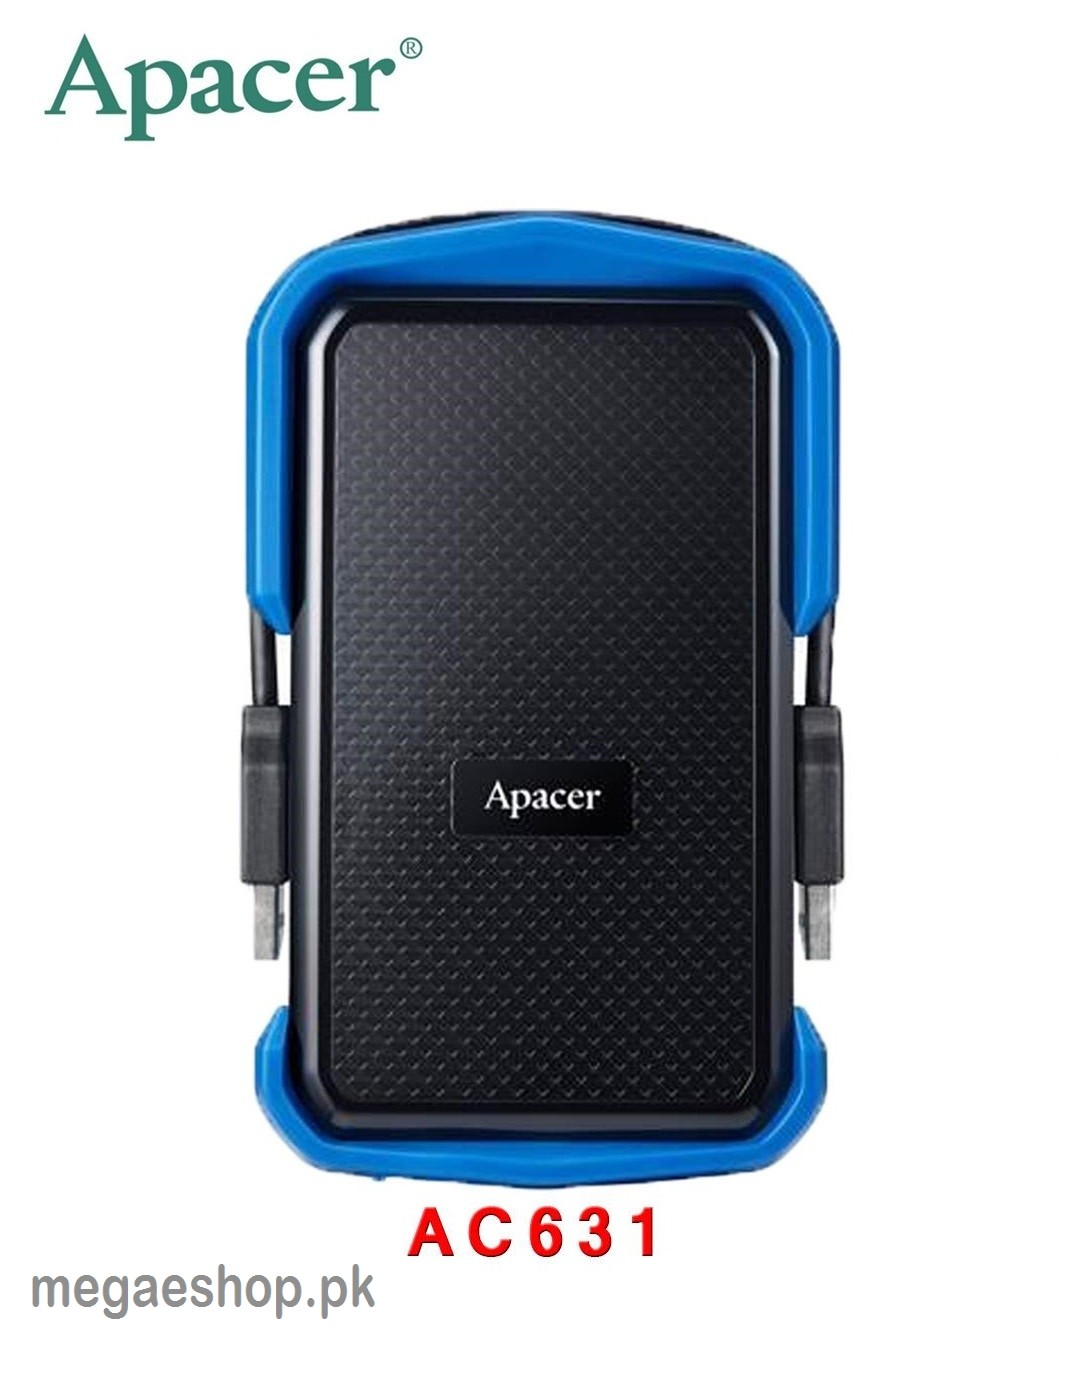 Apacer AC631 Shockproof 2TB Portable Hard Drive